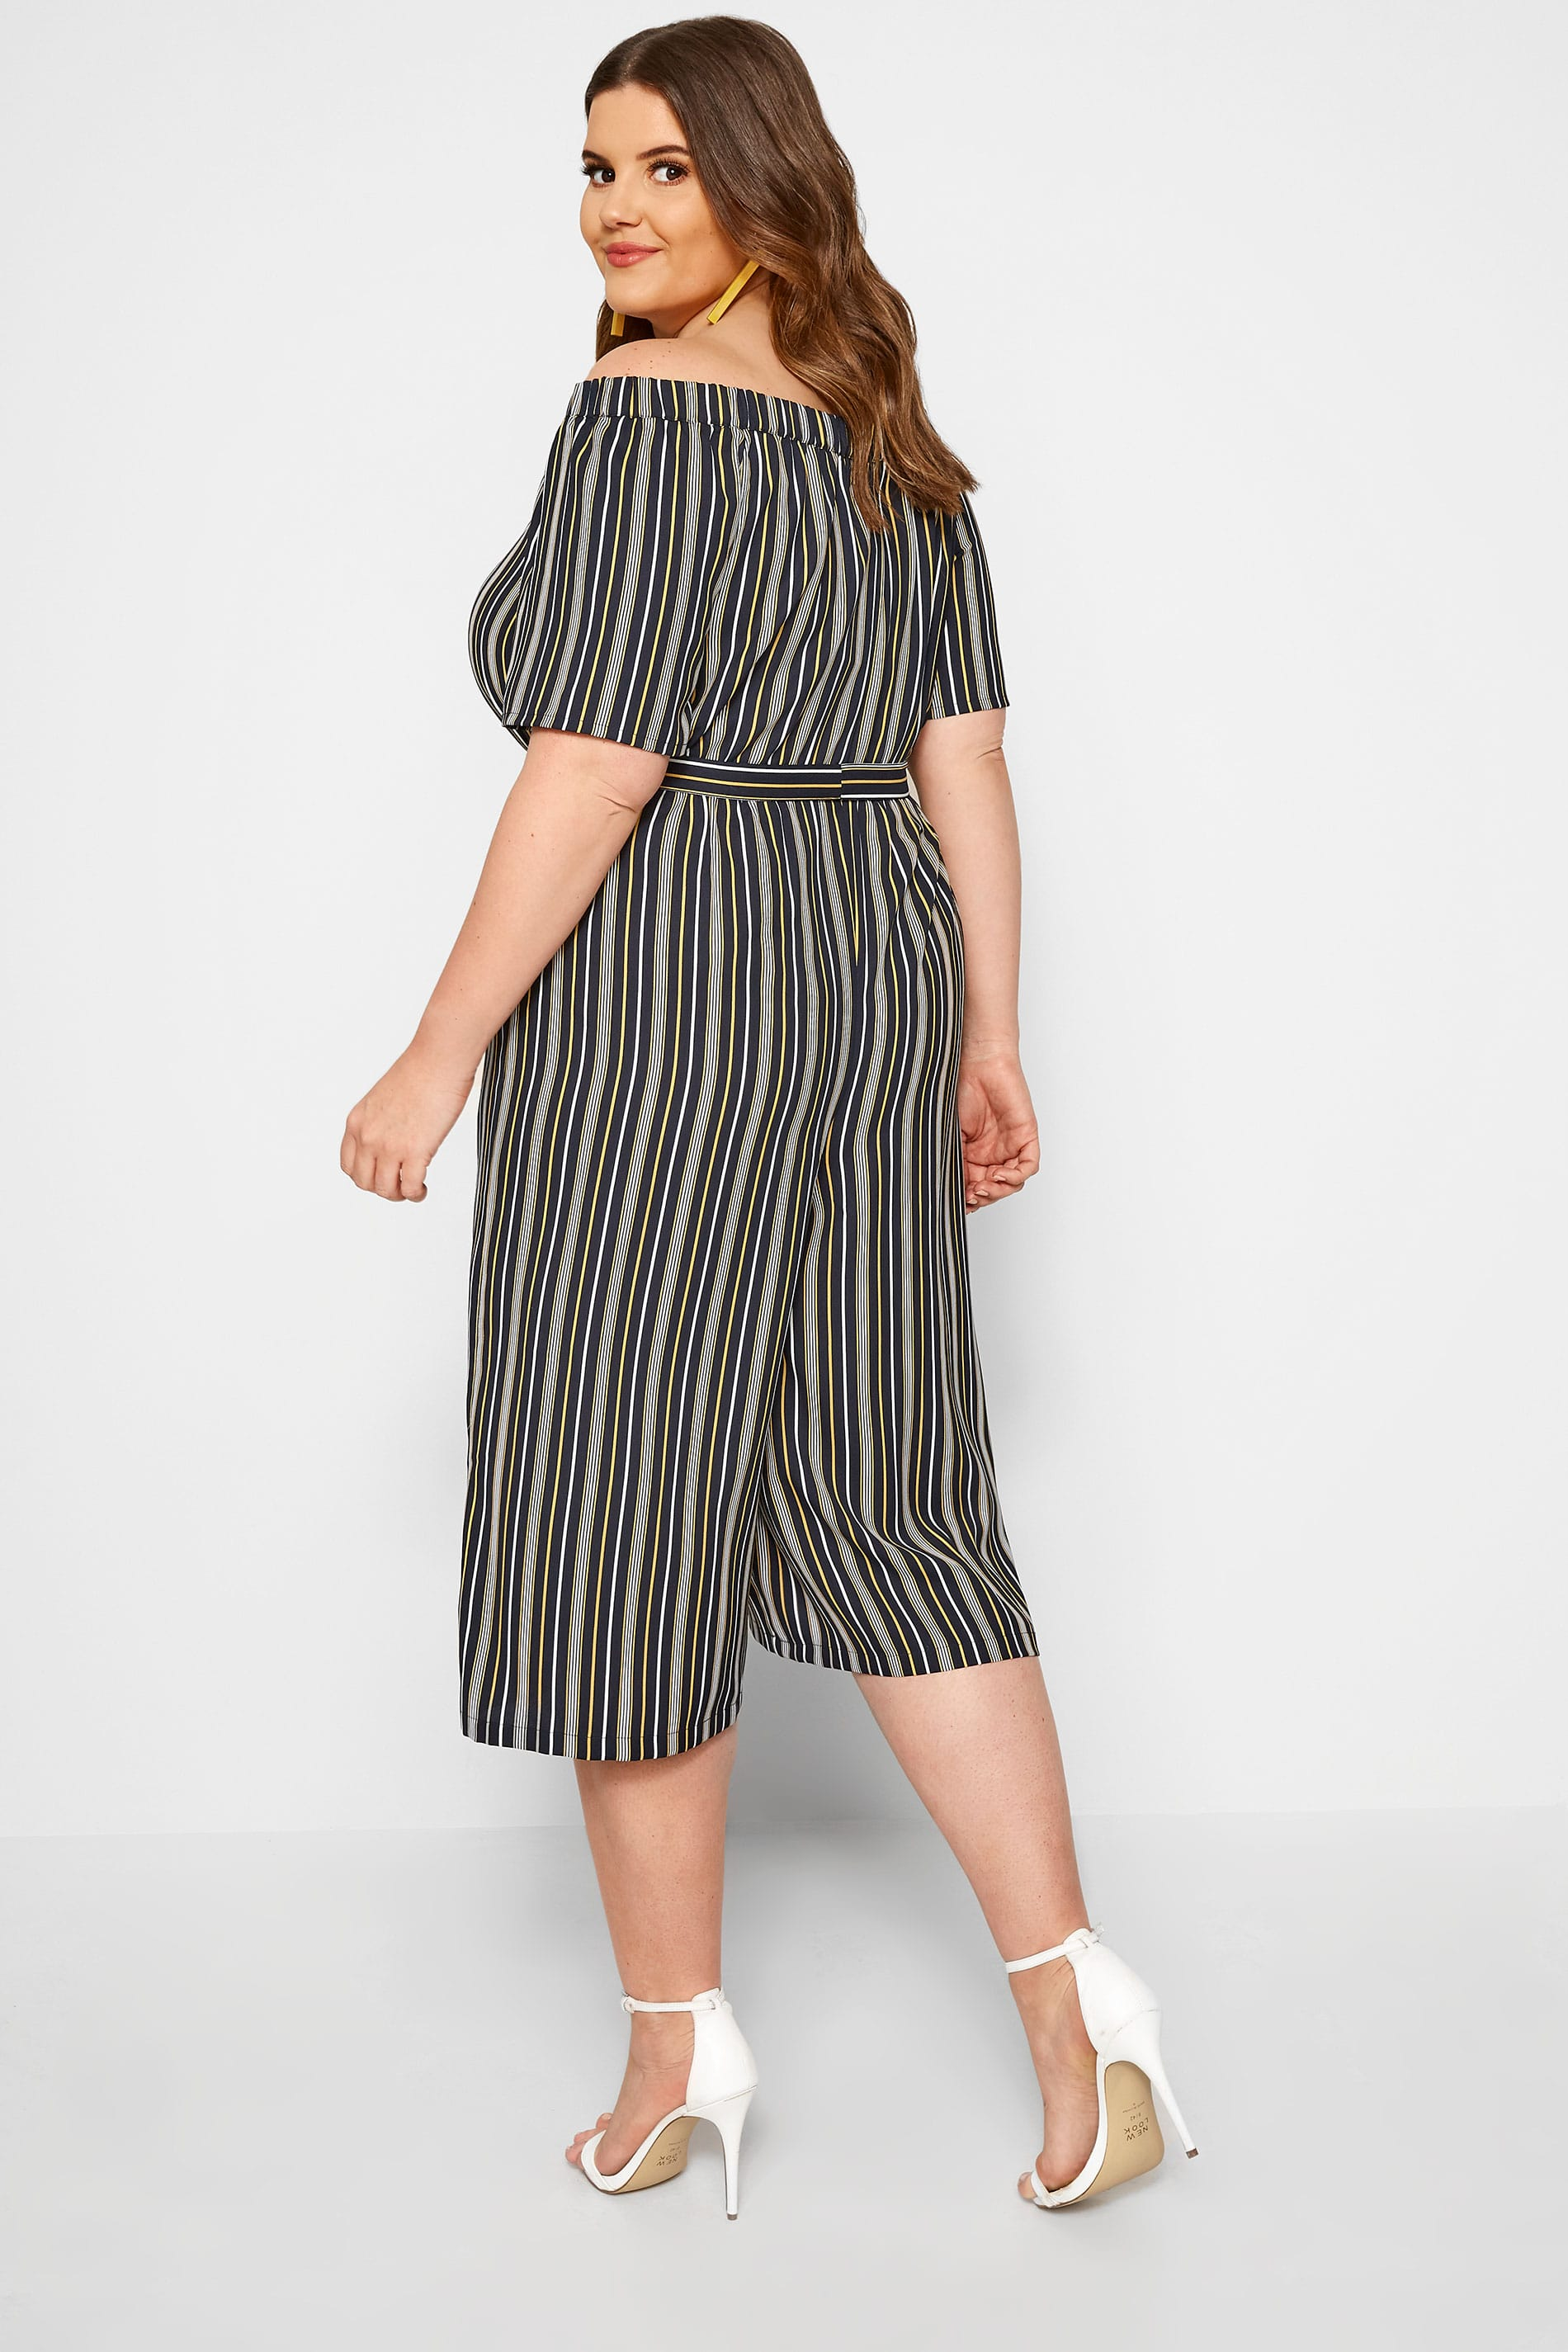 black yellow striped bardot culotte jumpsuit sizes 16 to 36 yours clothing. Black Bedroom Furniture Sets. Home Design Ideas